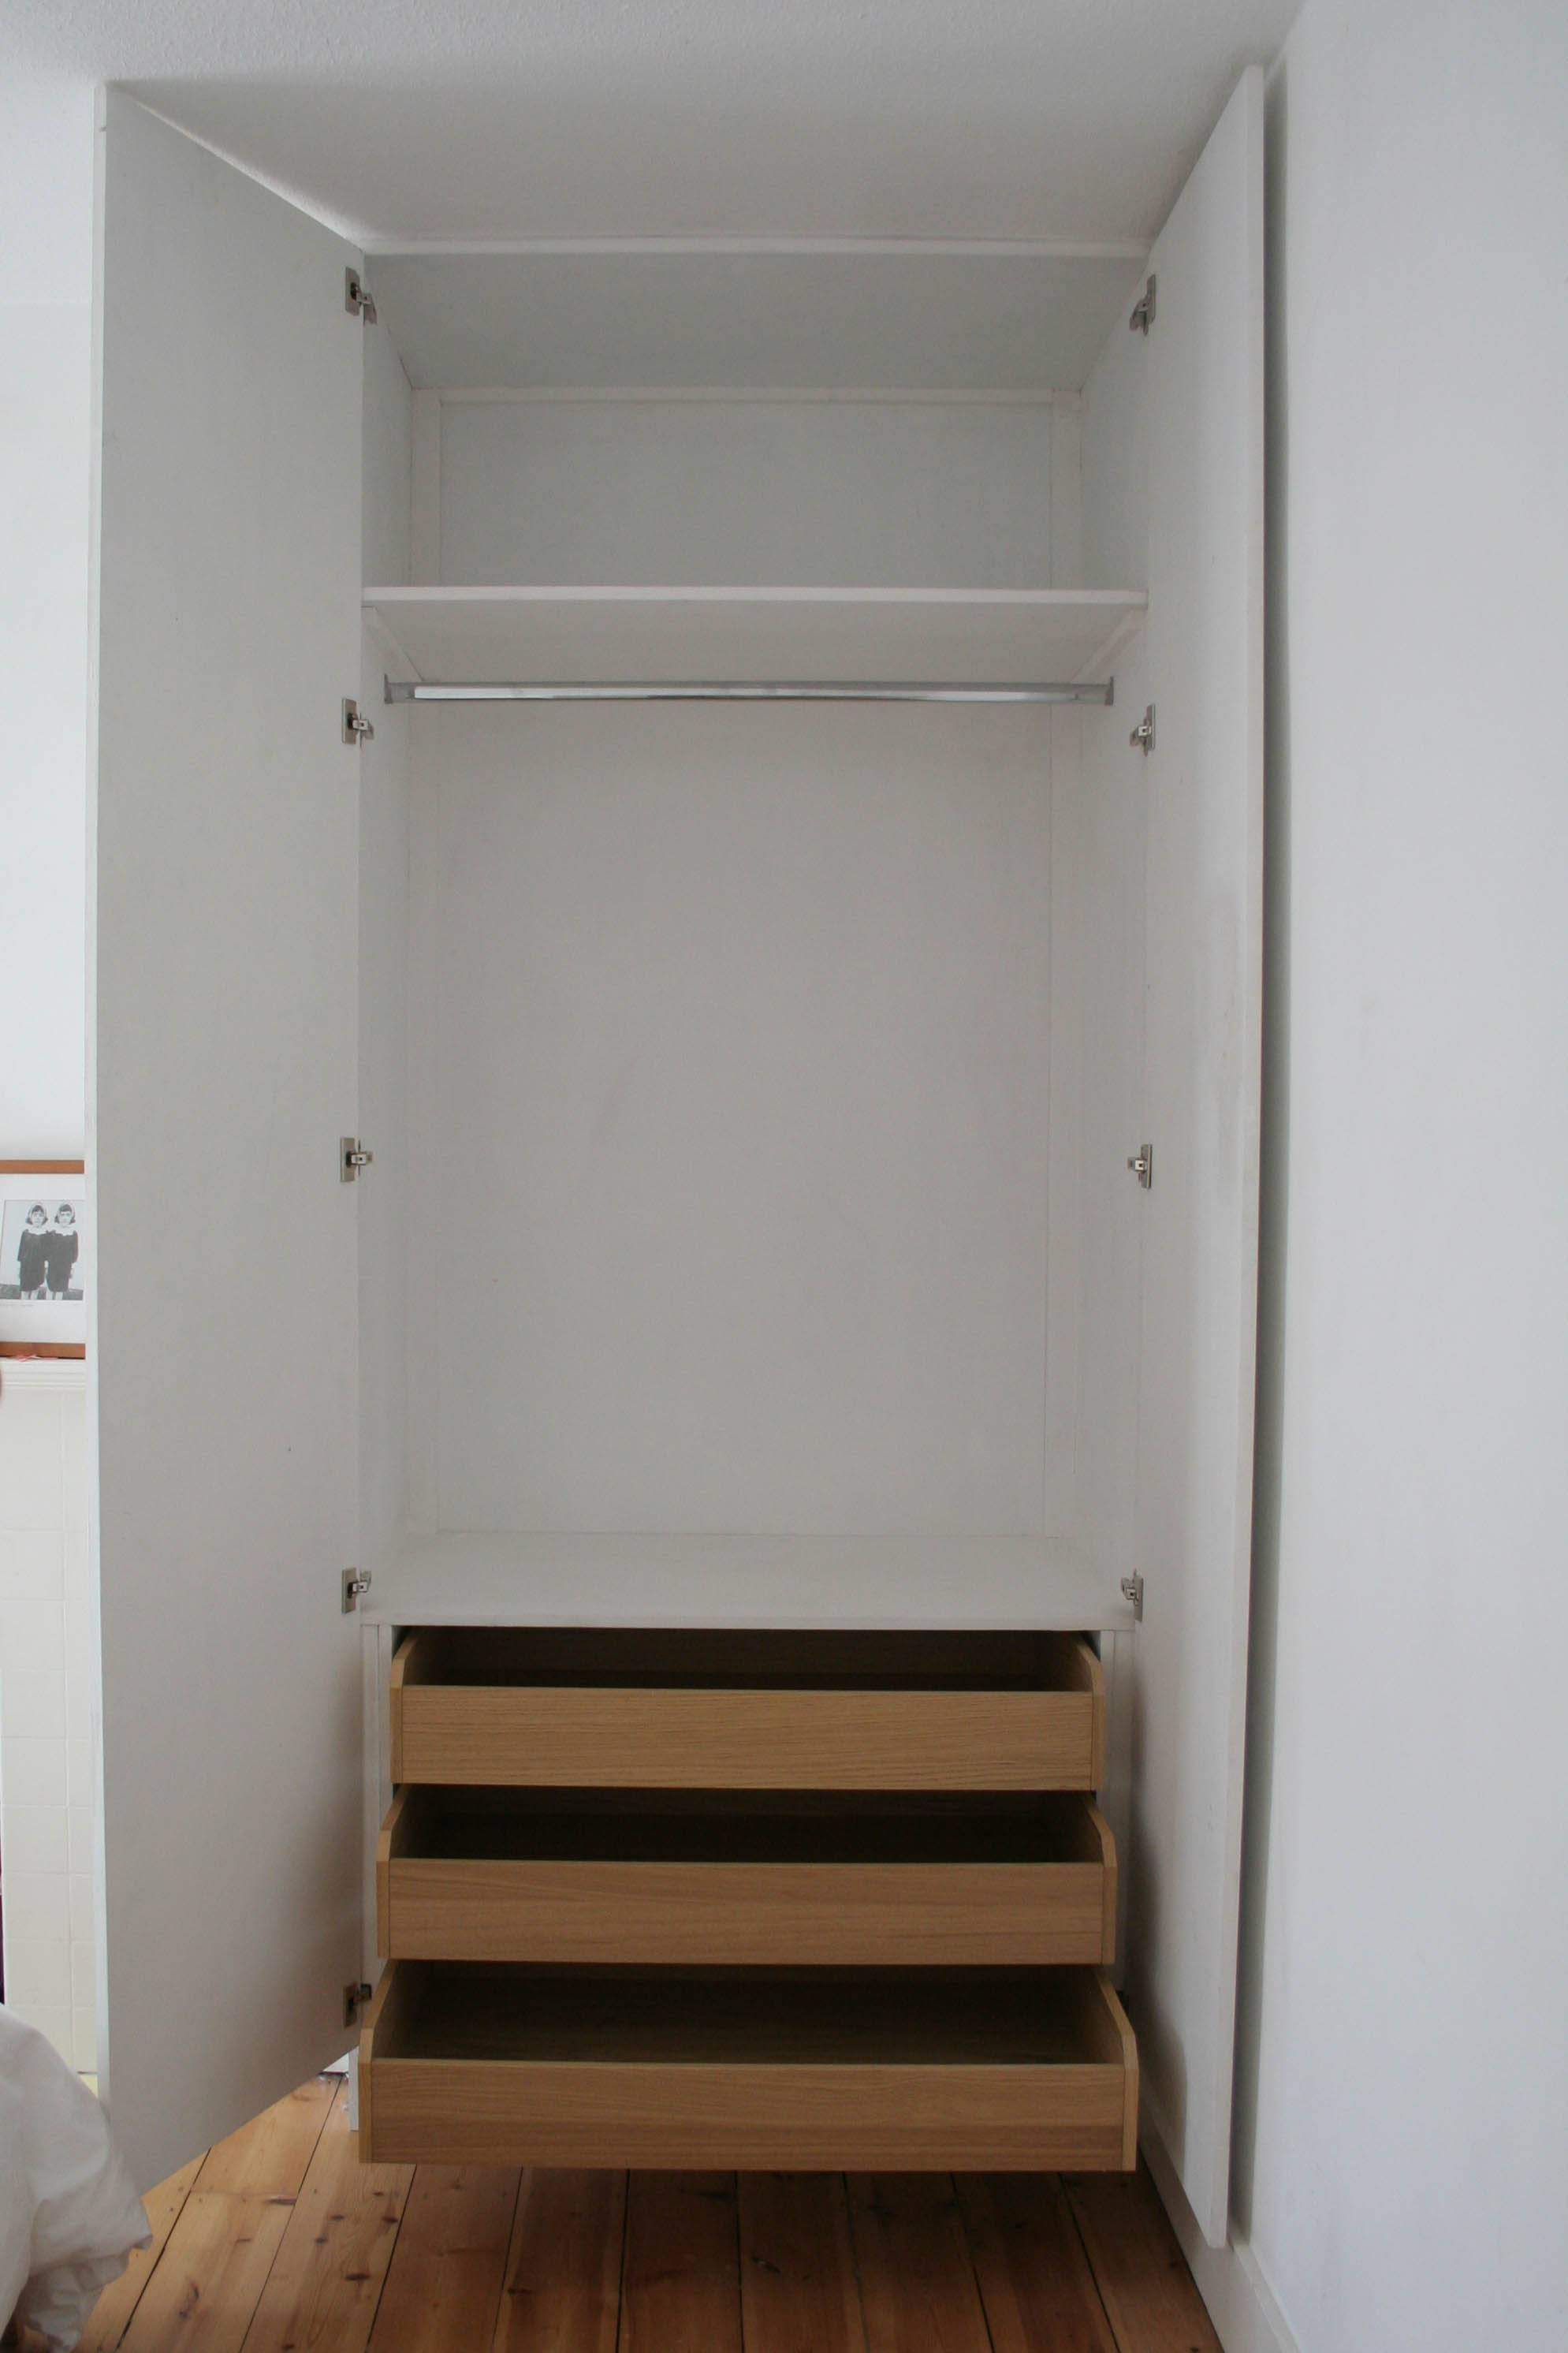 Astounding Big Wood Closet | Roselawnlutheran inside Single Wardrobe With Drawers And Shelves (Image 6 of 30)